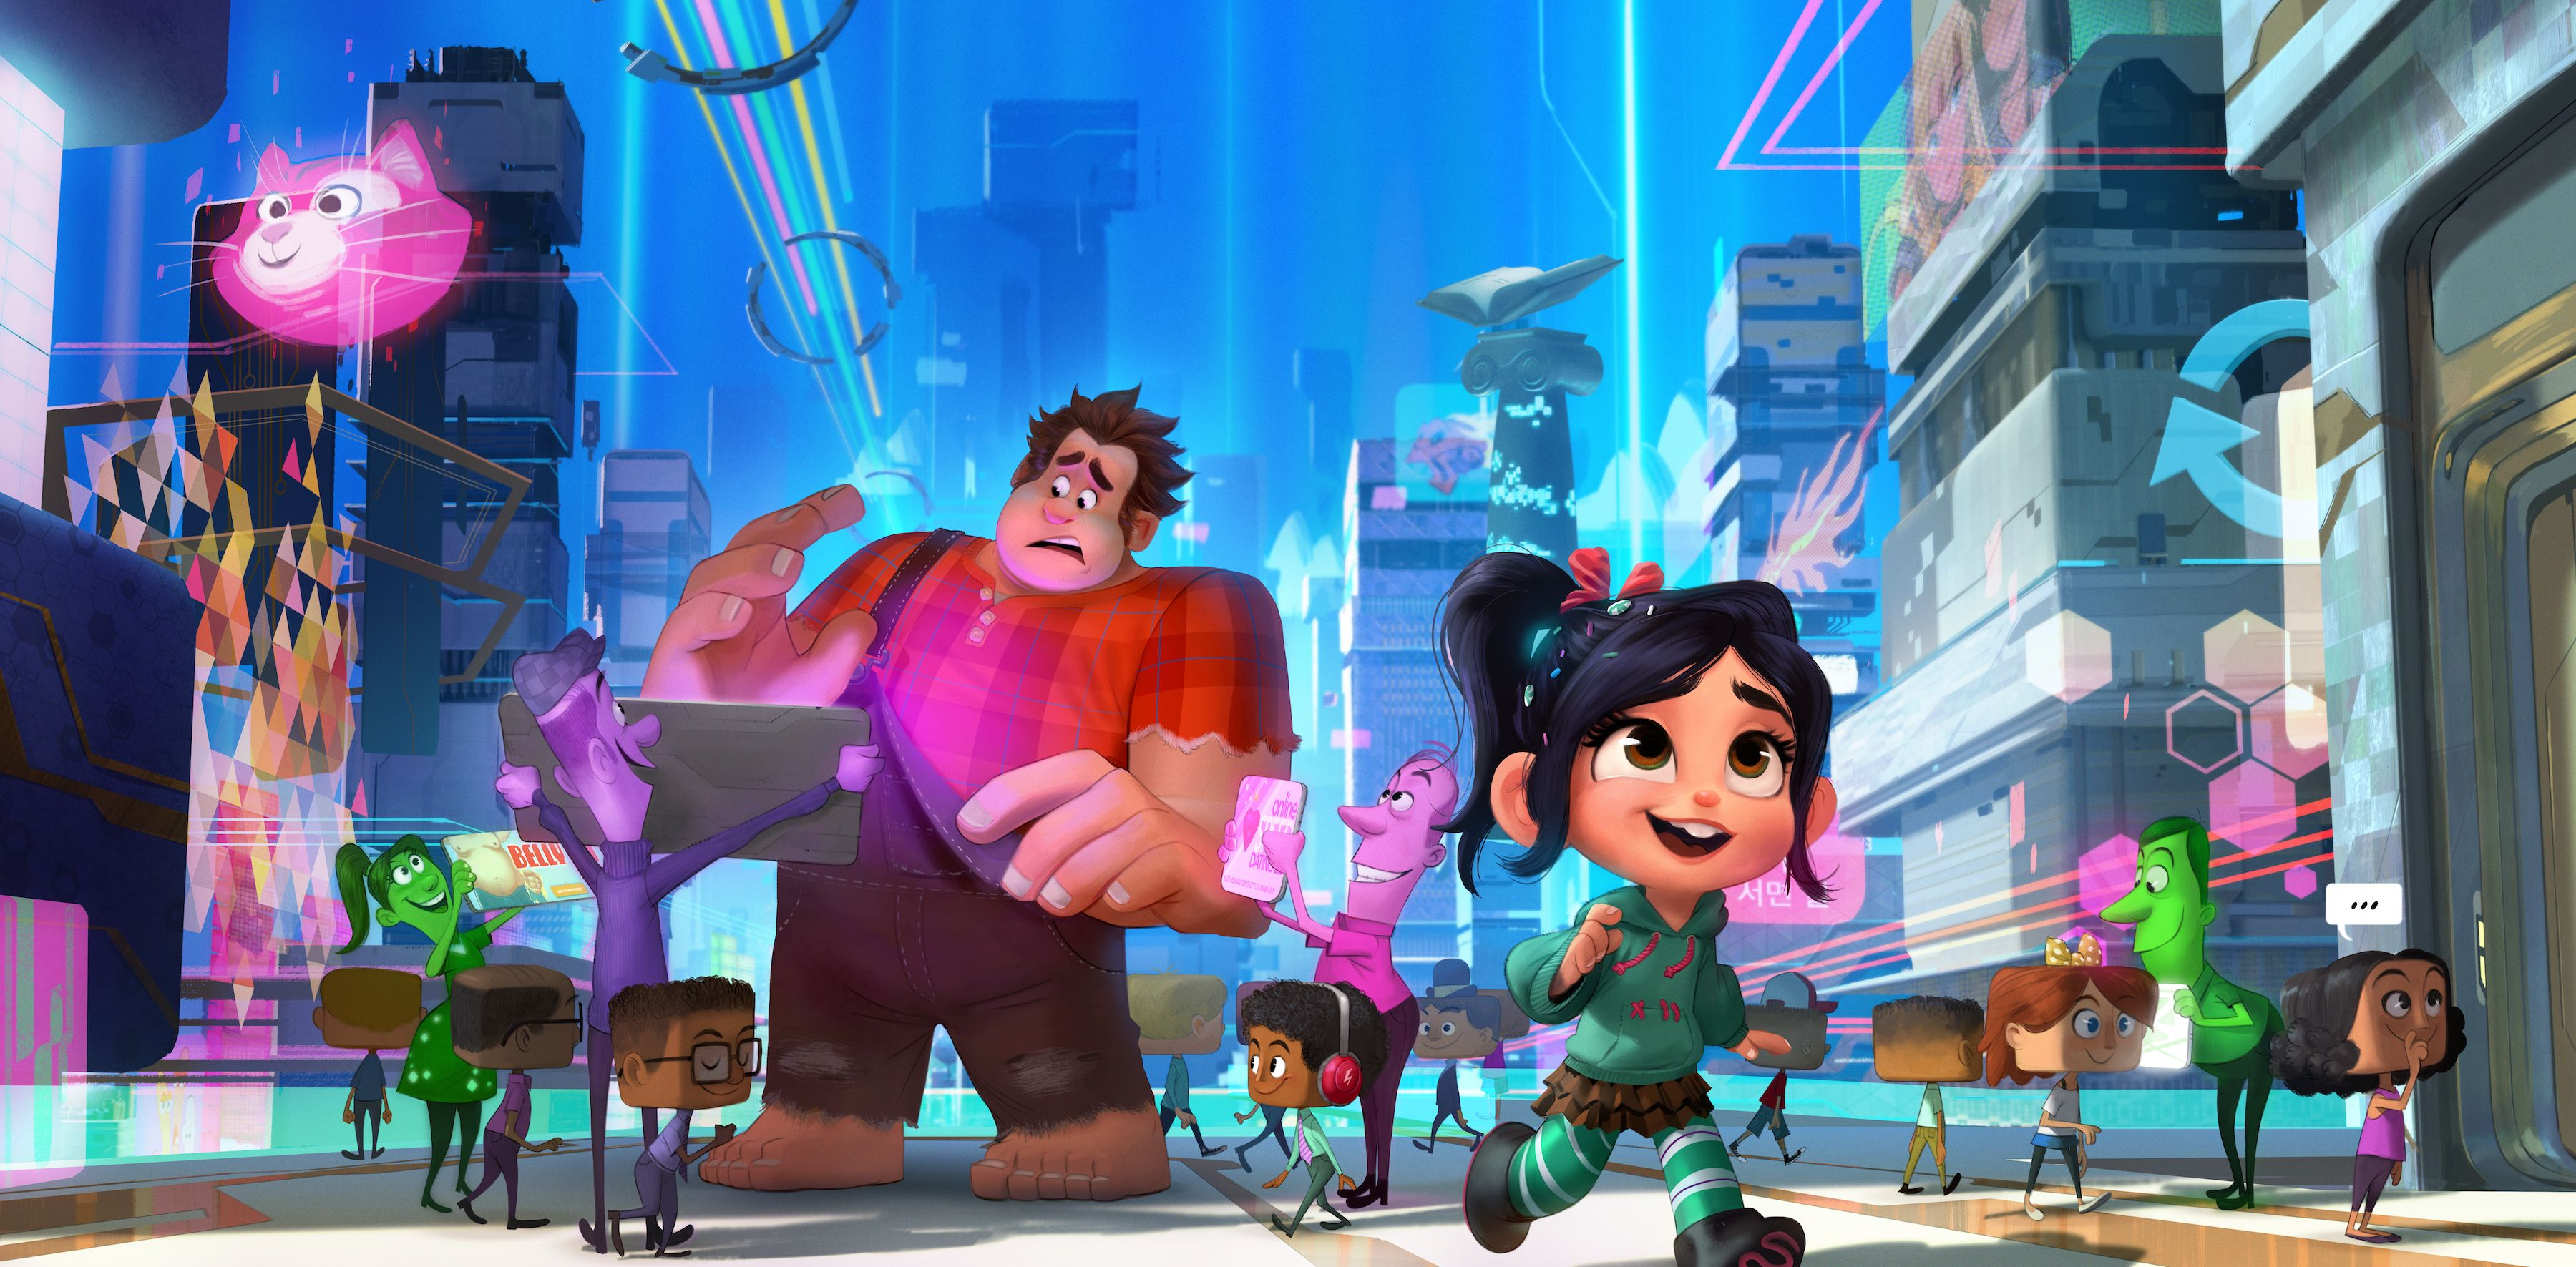 Coco Returns to Theaters, Wreck-It Ralph Airs on ABC | Collider